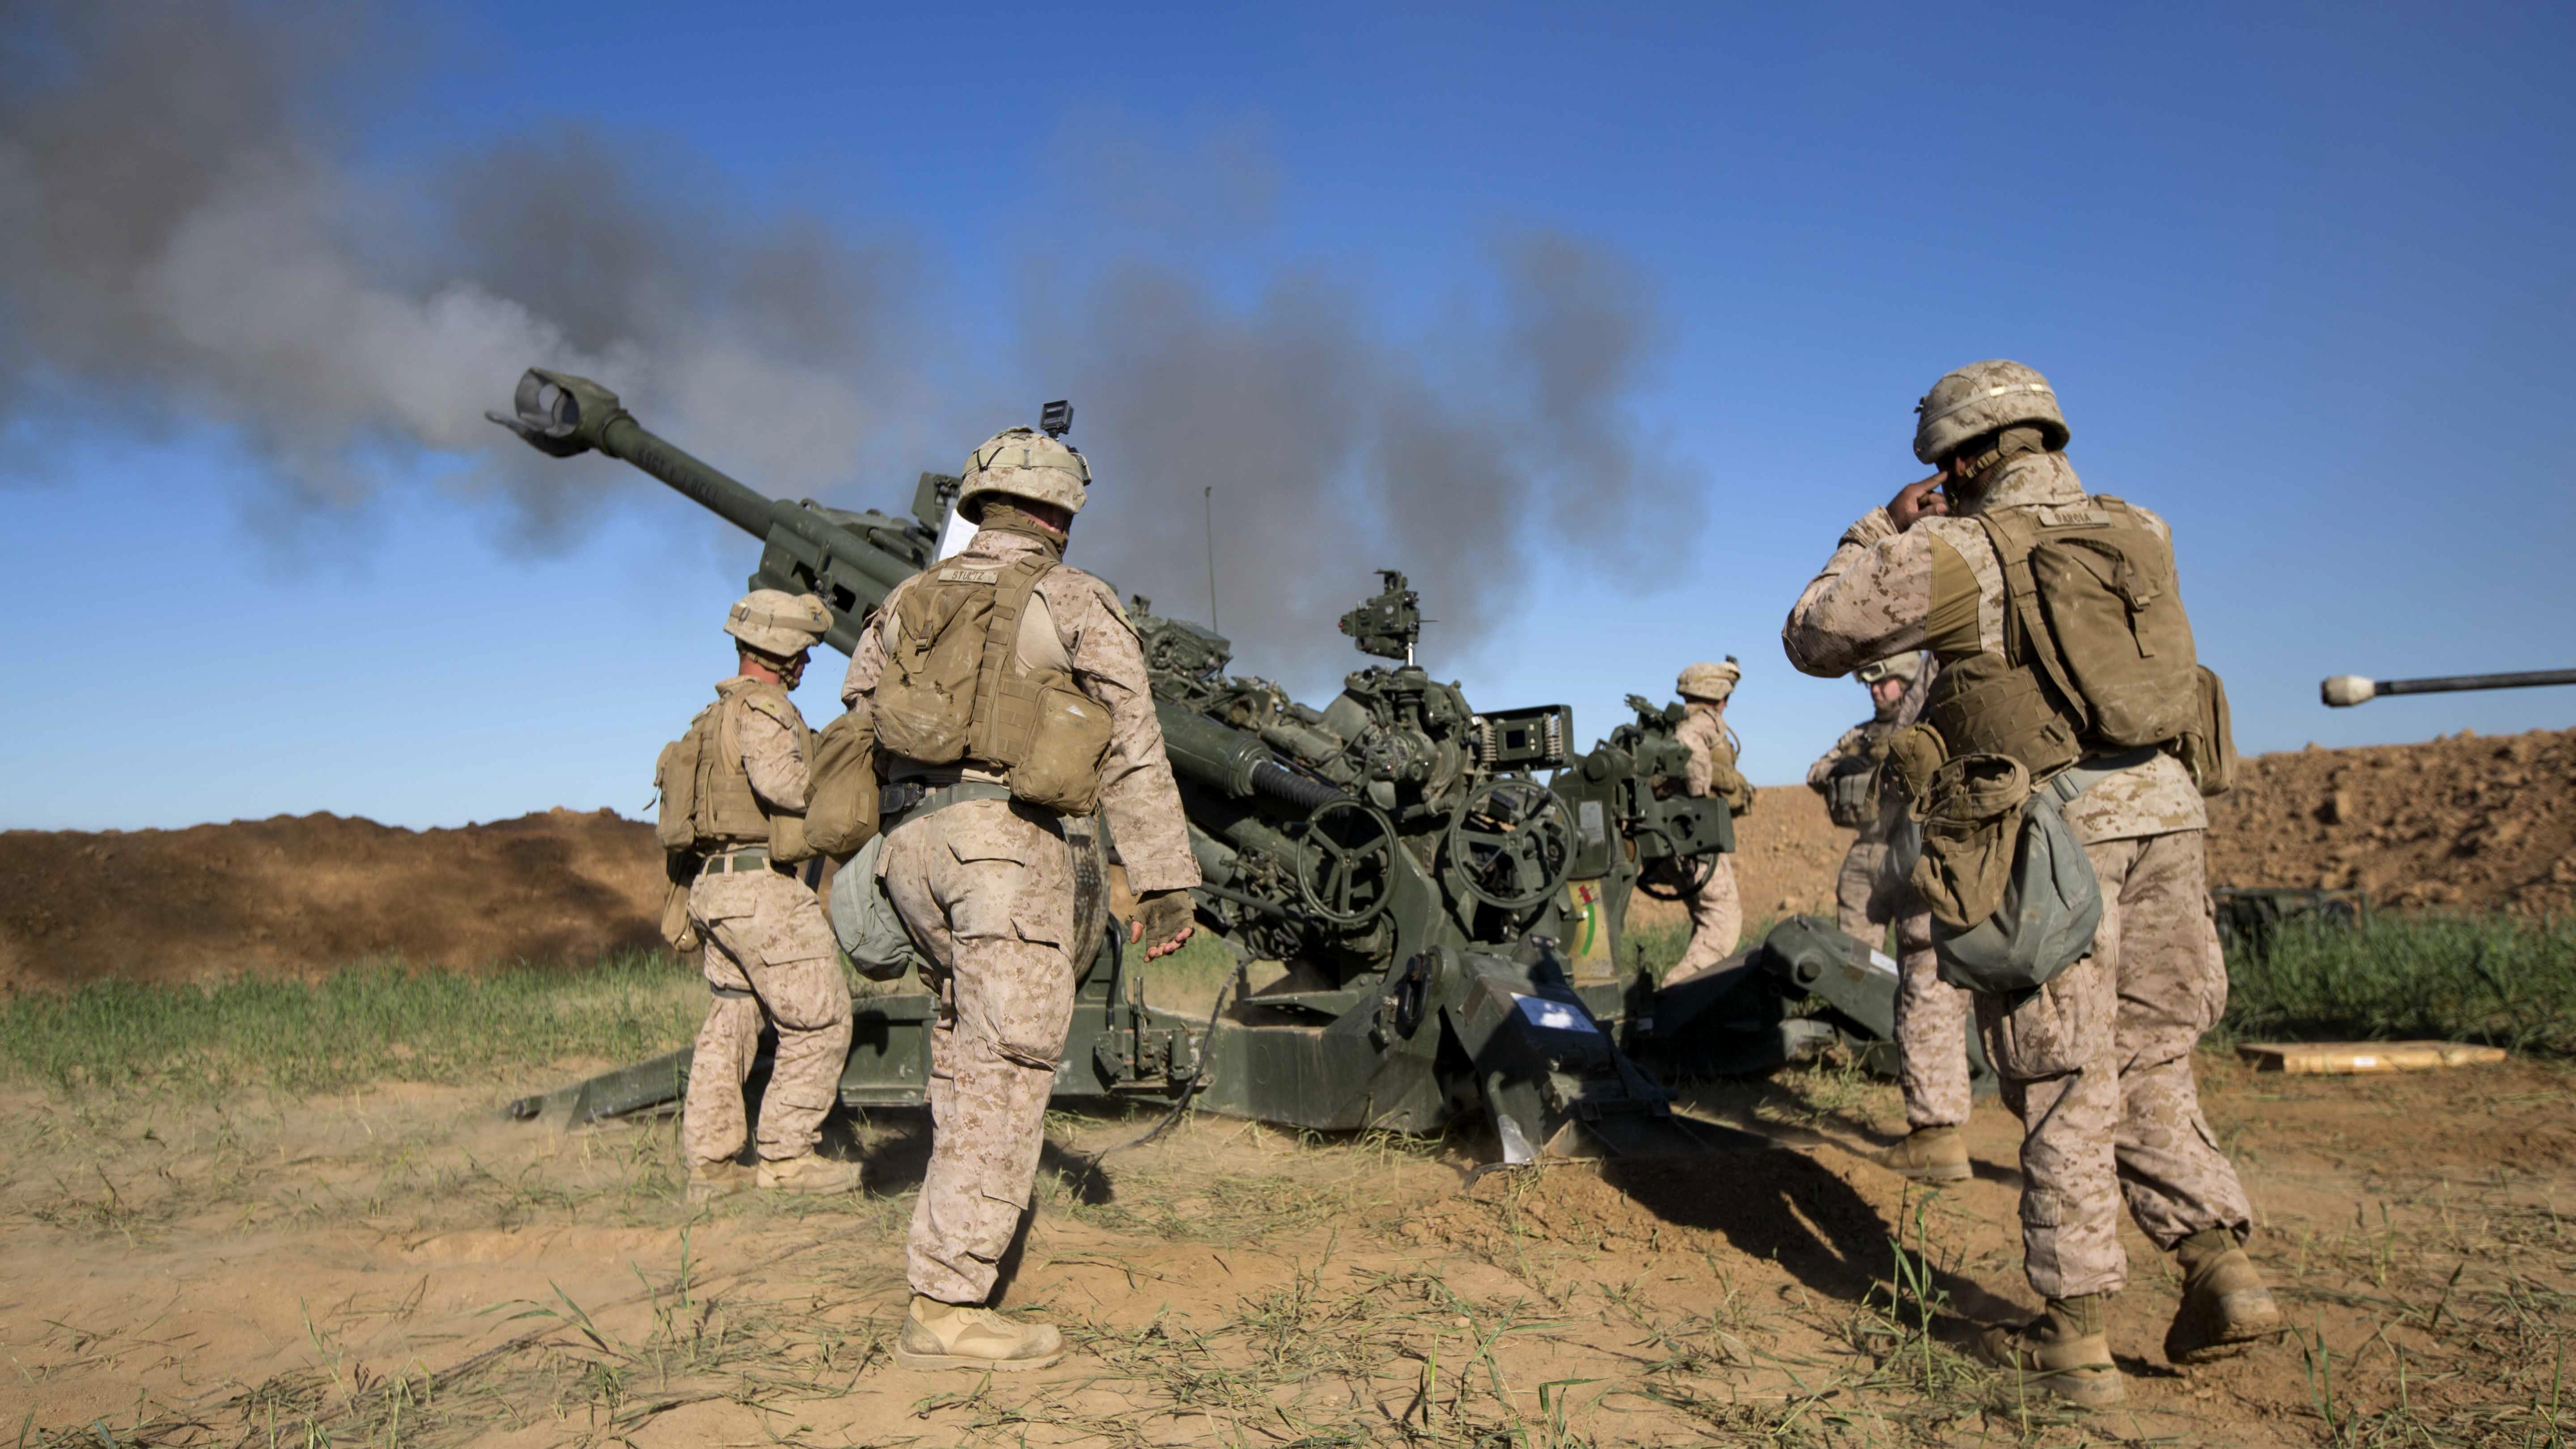 U.S. Marines with Task Force Spartan, 26th Marine Expeditionary Unit (MEU), on Fire Base Bell, Iraq, fire an M777A2 Howitzer at an ISIS infiltration route March 18, 2016. US Marine Corps Photo